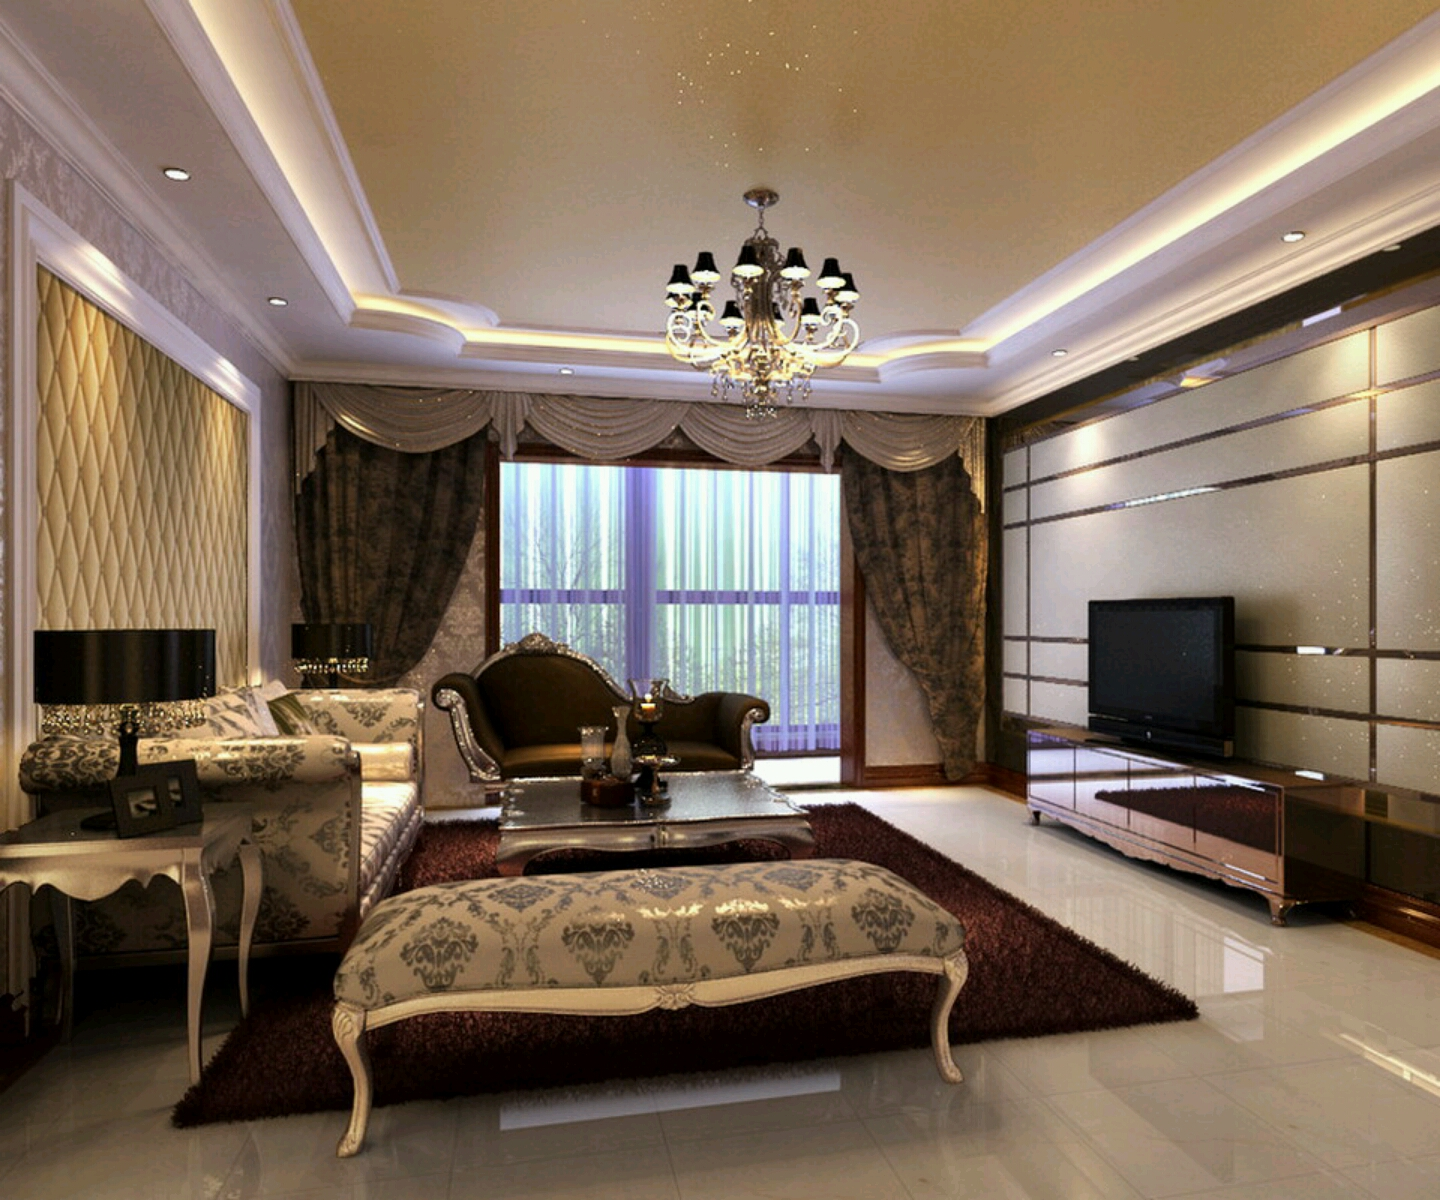 Elegant Home Design home decoration design modern home interior design and interior